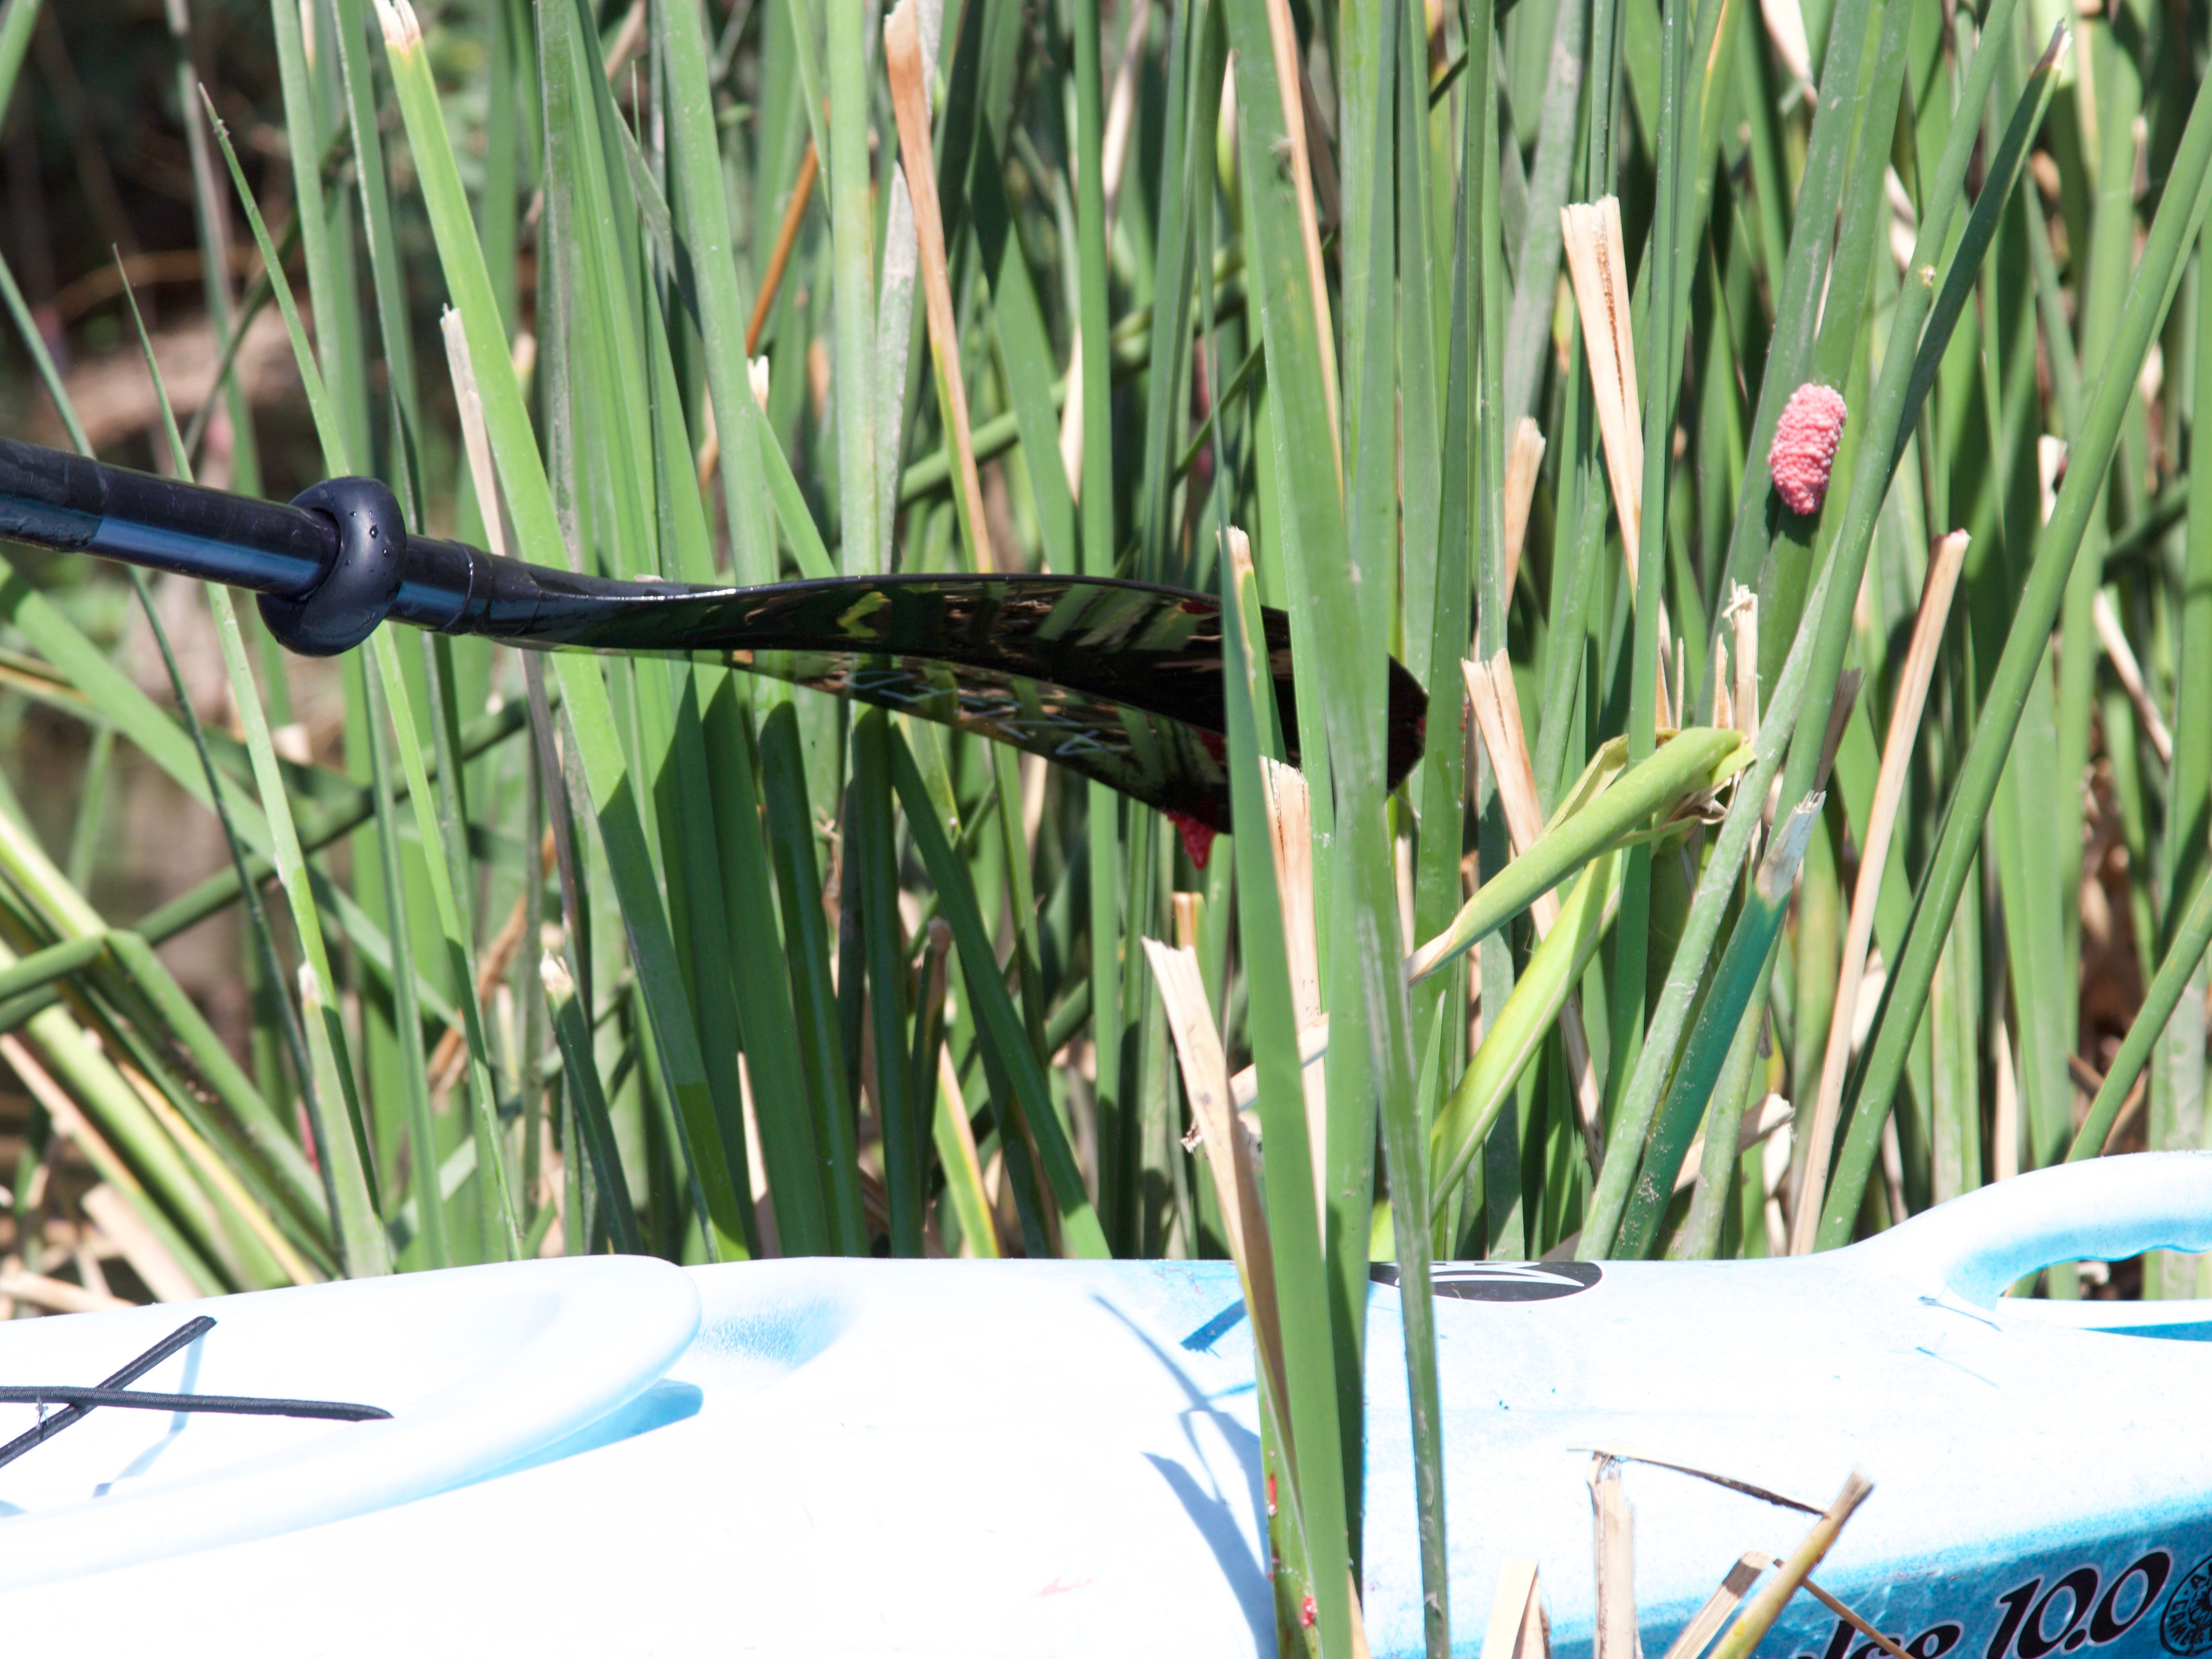 Biologists recommend knocking the bright pink clusters of invasive apple snail eggs off cattail reeds and into the water to stop the species from spreading.